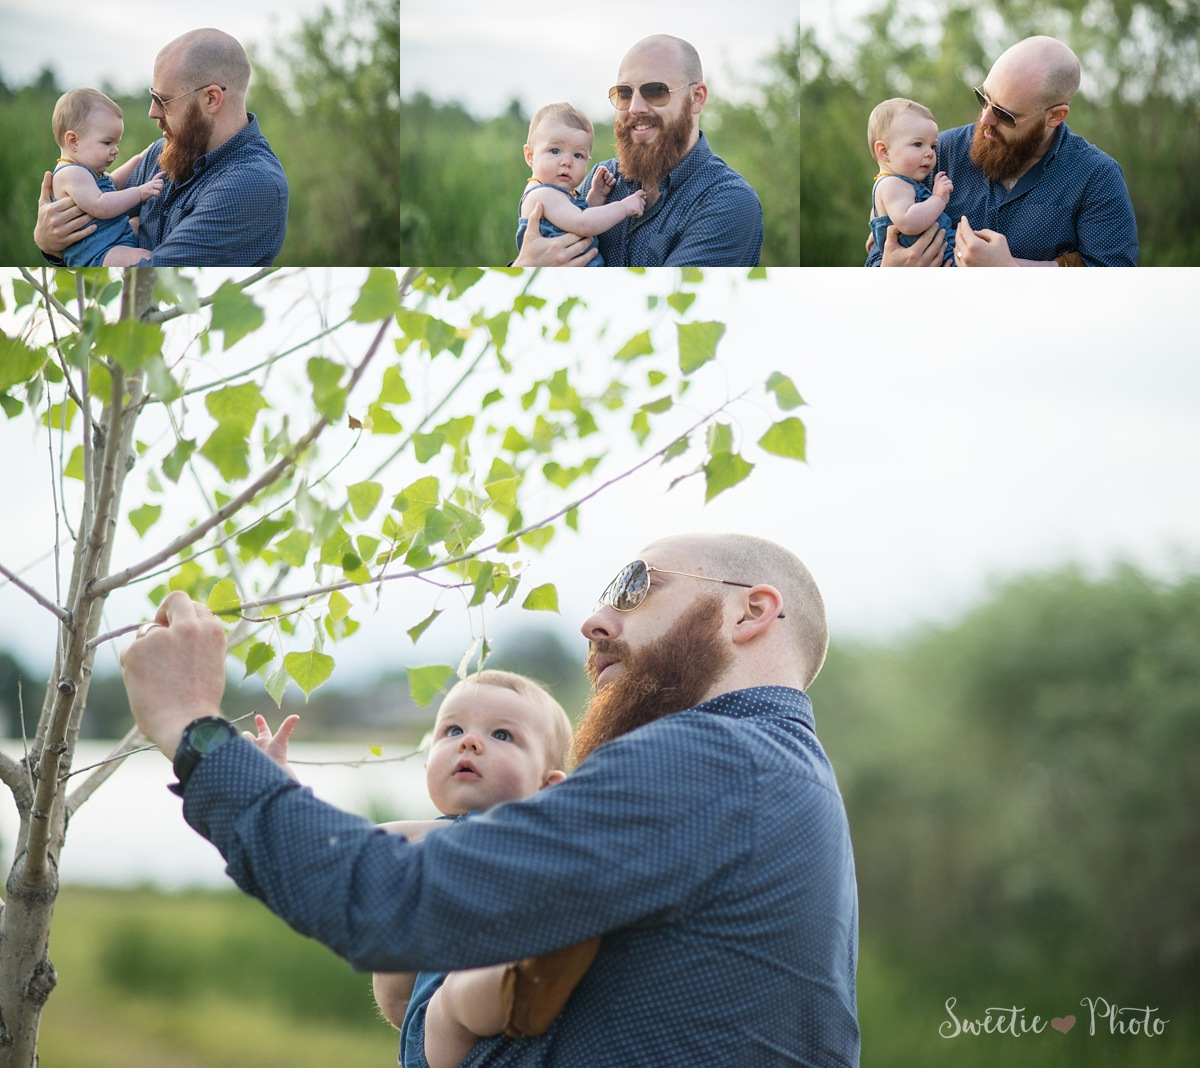 Mini-Session | Family & Children Portraits | Sweetie Photo, Denver, Colorado